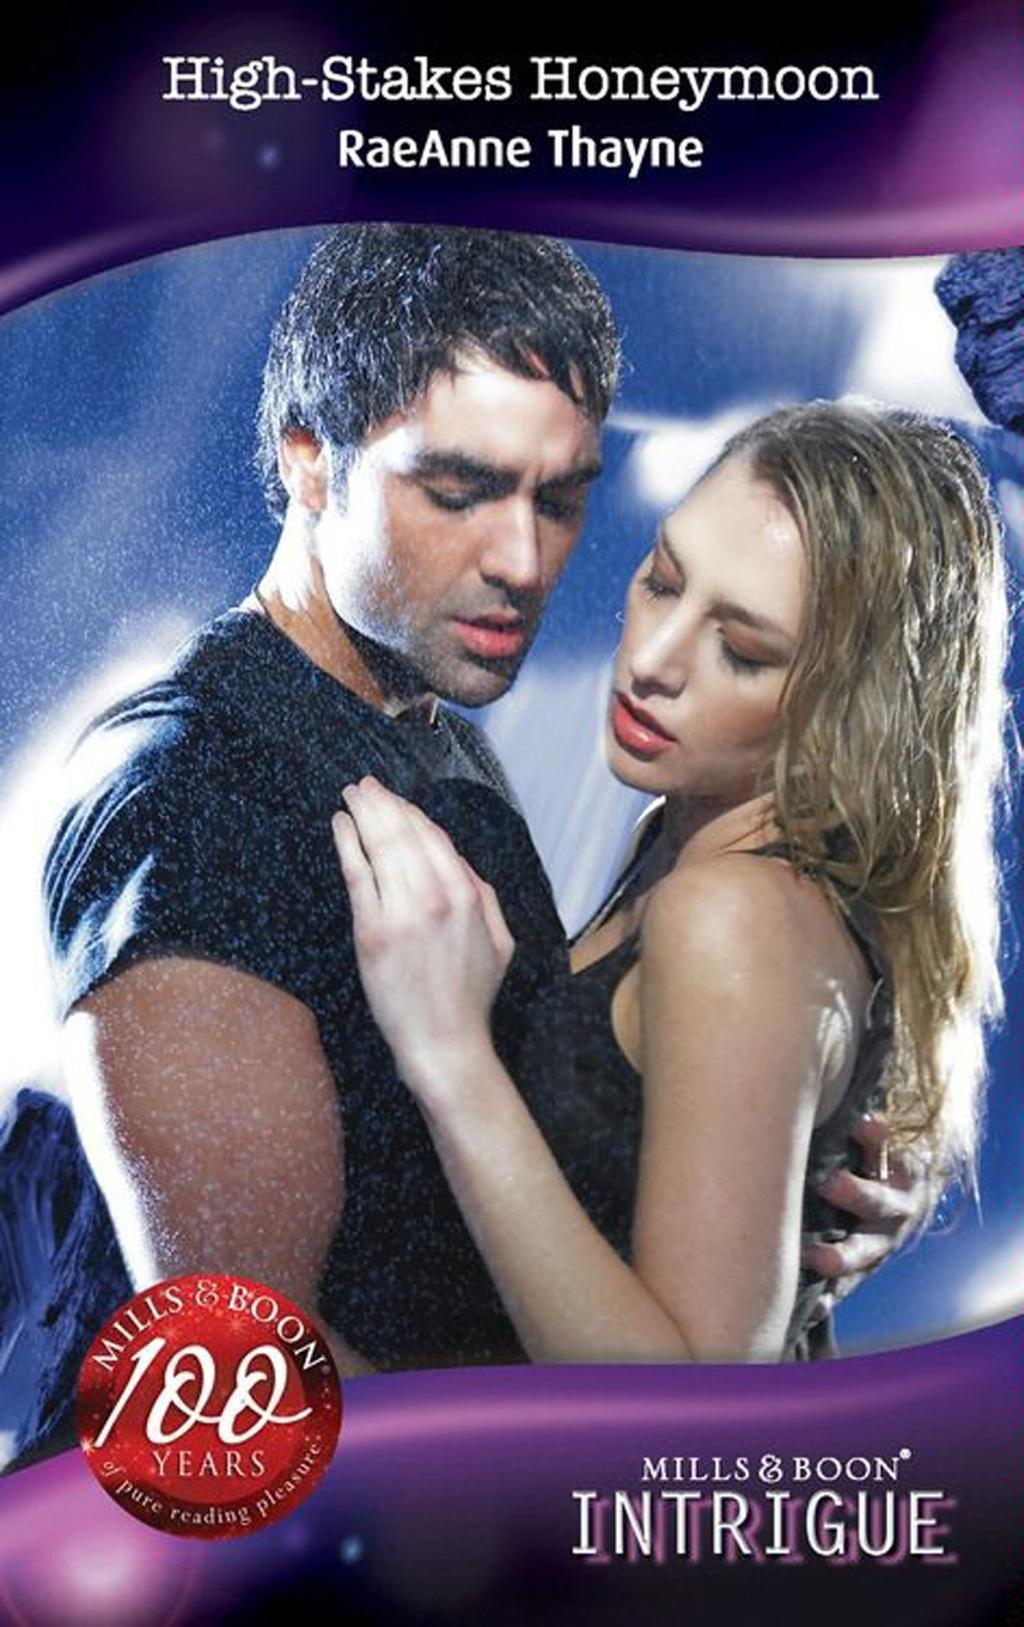 High-Stakes Honeymoon (Mills & Boon Intrigue)